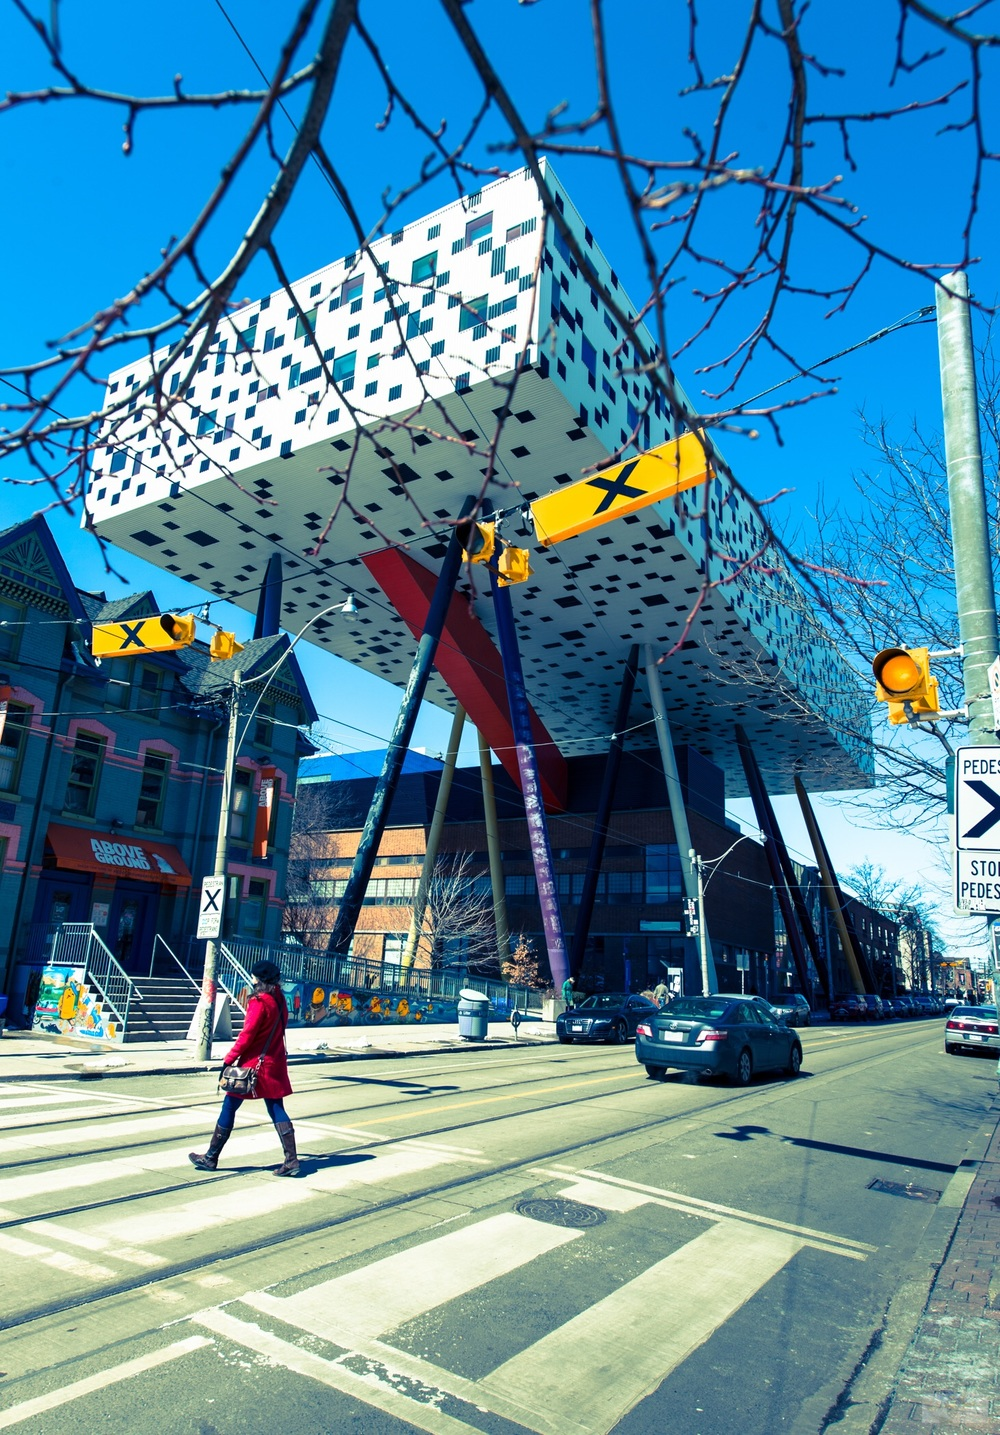 OCAD U with pedestrian crossing